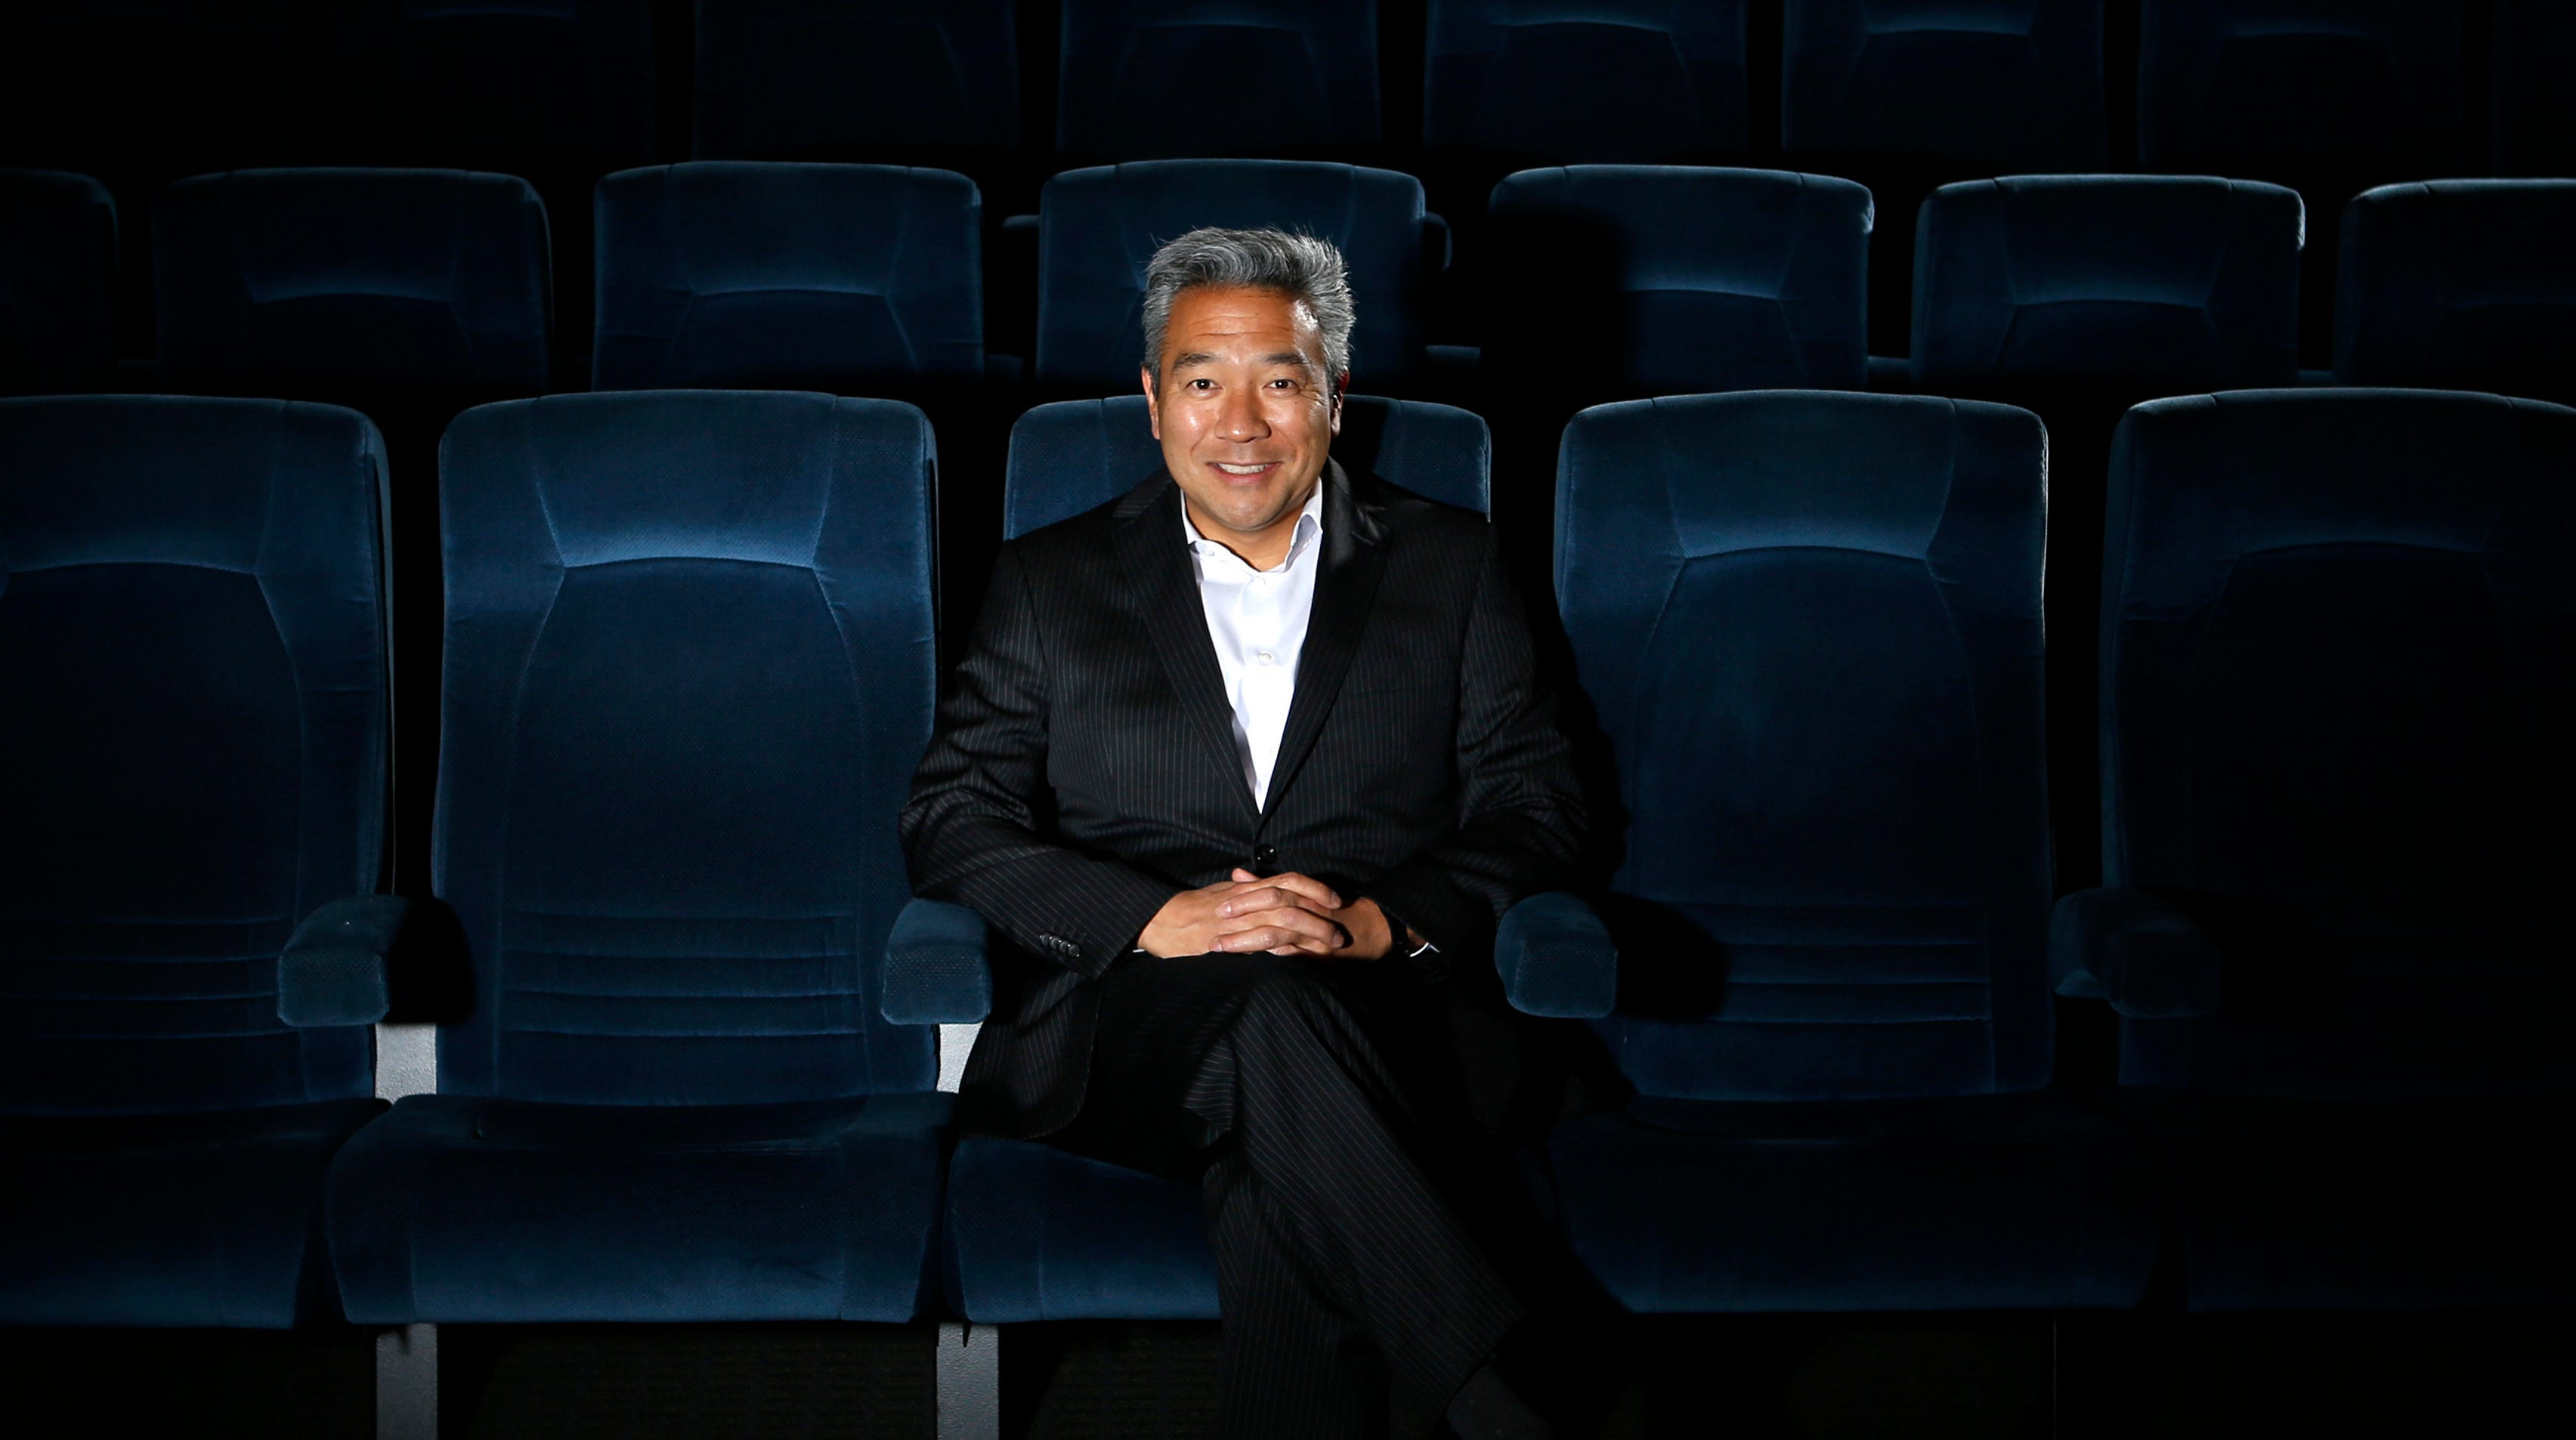 Kevin Tsujihara, seen here in a 2013 photo, is Warner Bros. chairman and CEO.